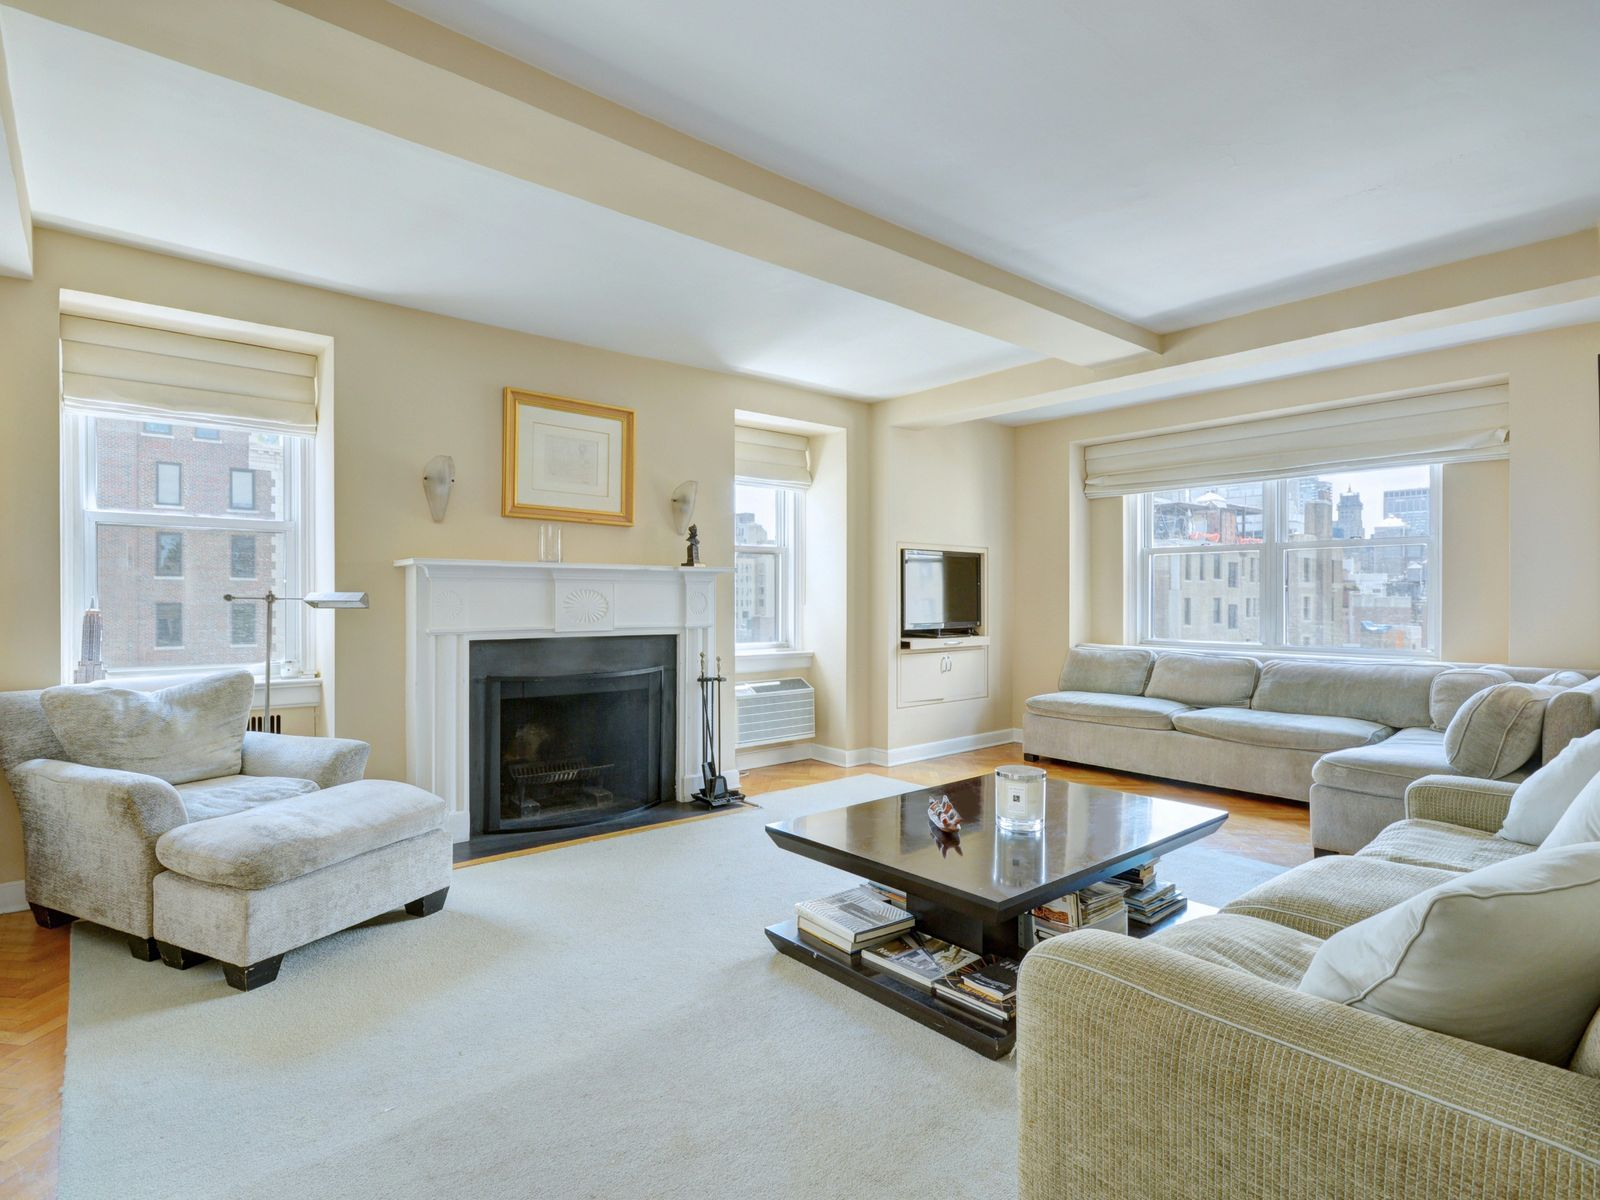 3 East 69 Street – High Floor, Open View, New York NY Coop - New York City Real Estate